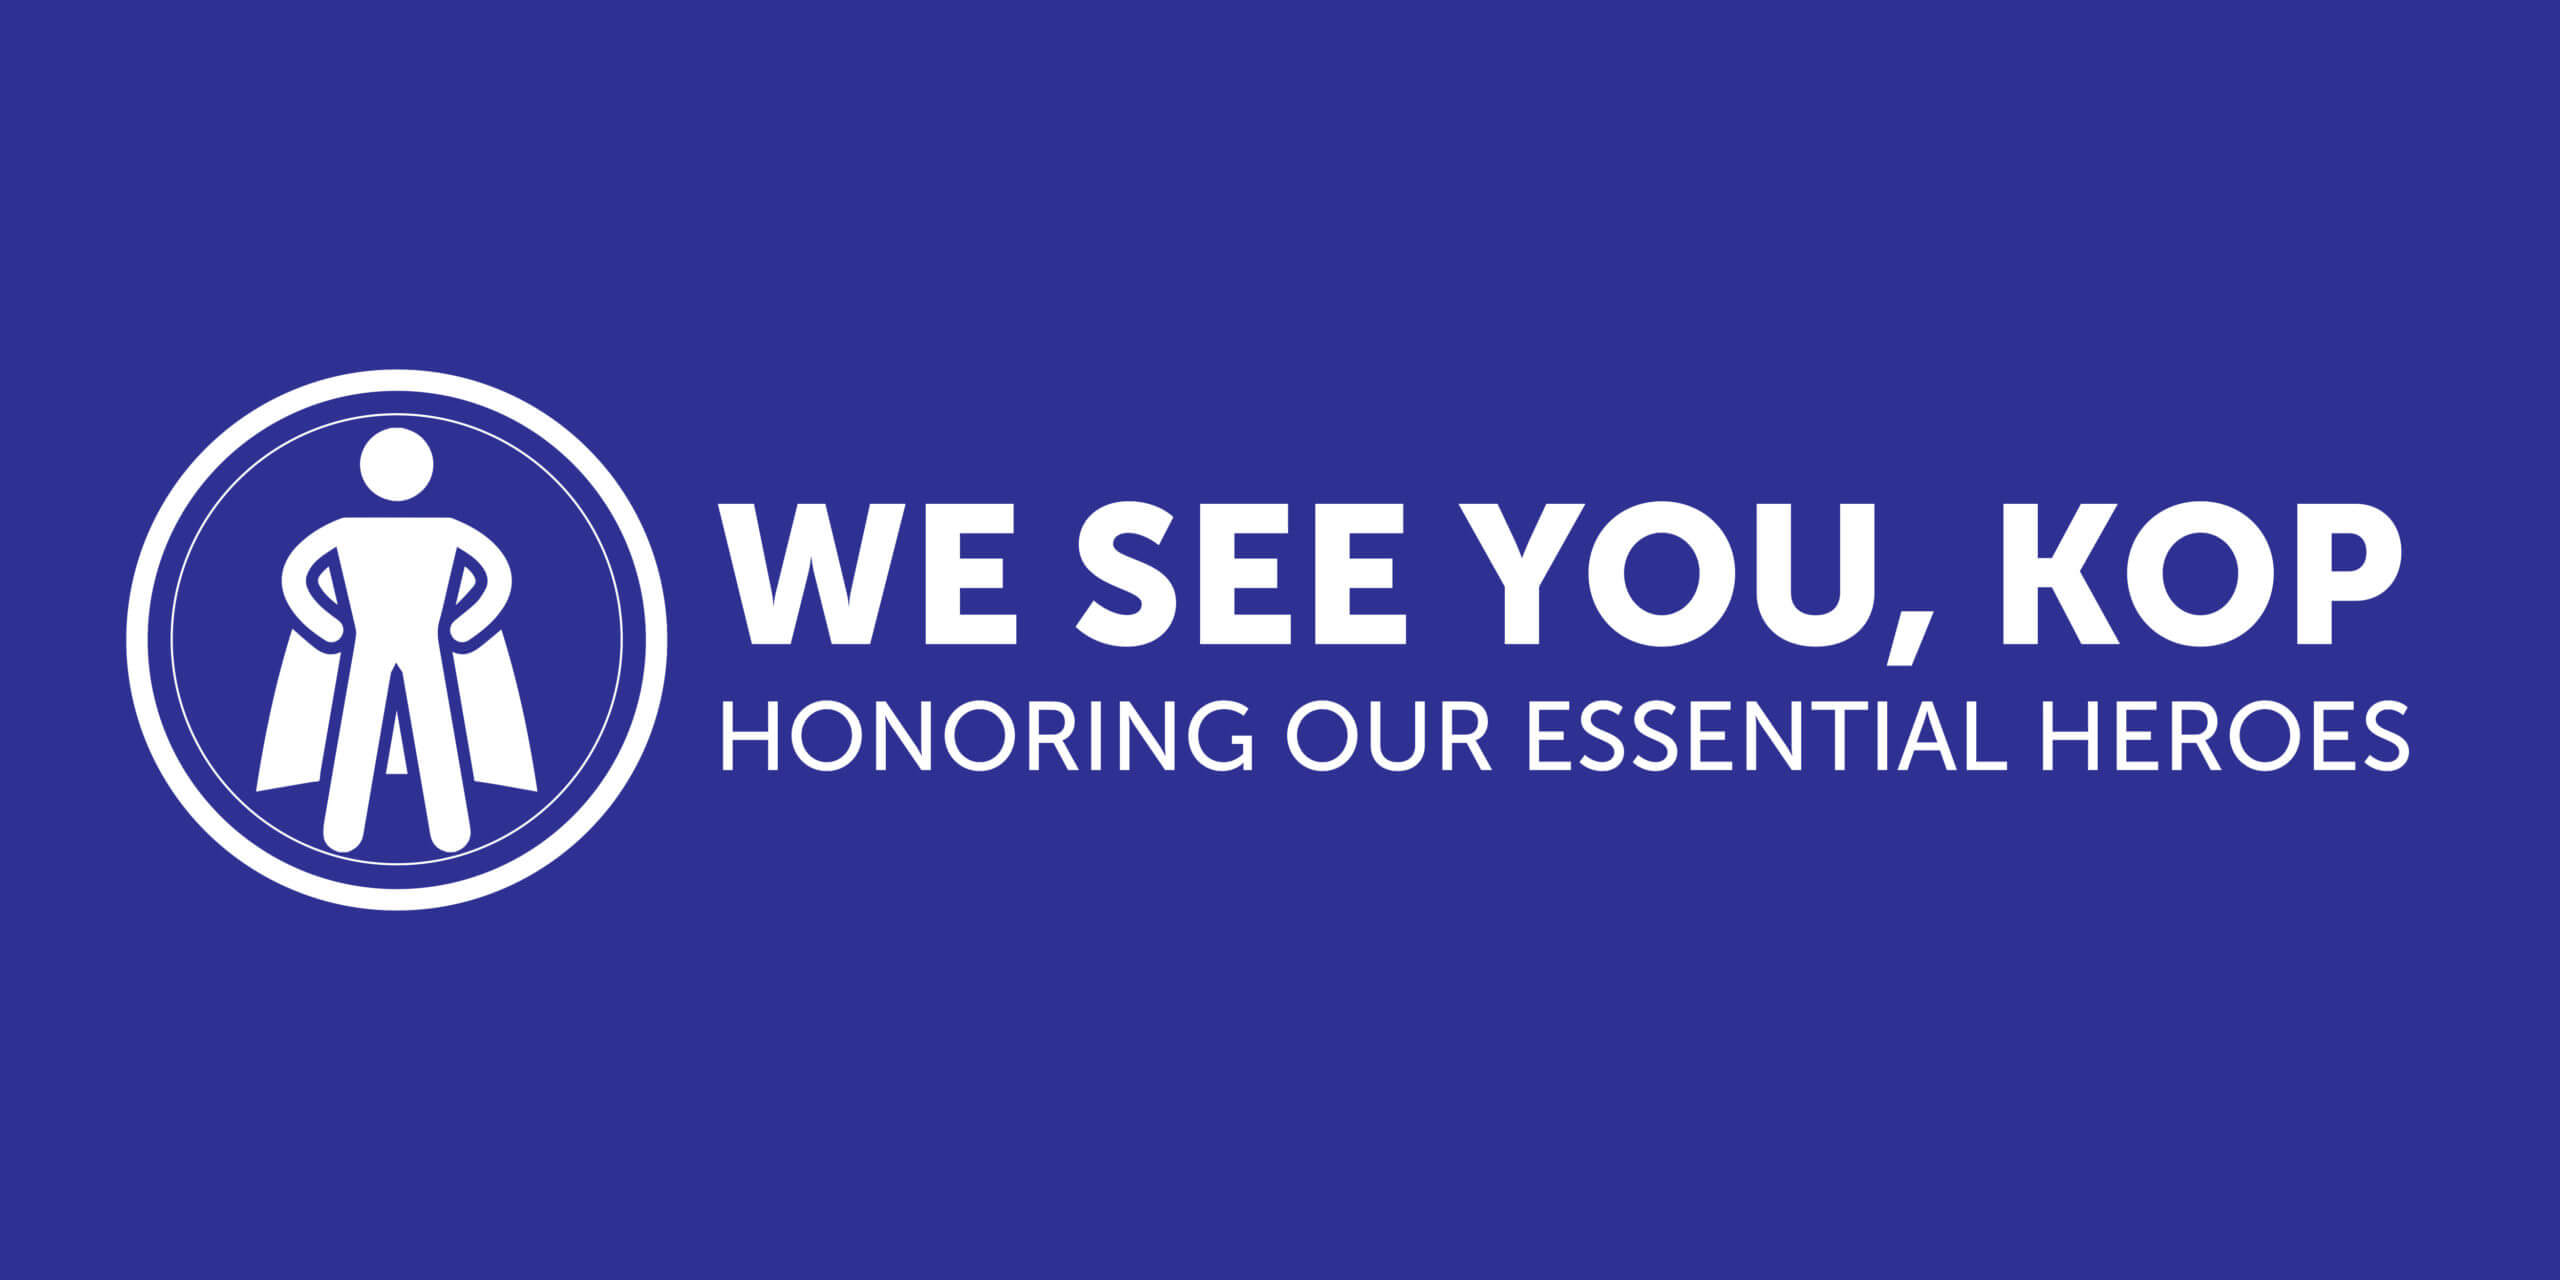 King of Prussia District and Upper Marion Township Partner to Celebrate First Responders, Essential Workers with 'We See You, KOP' Campaign